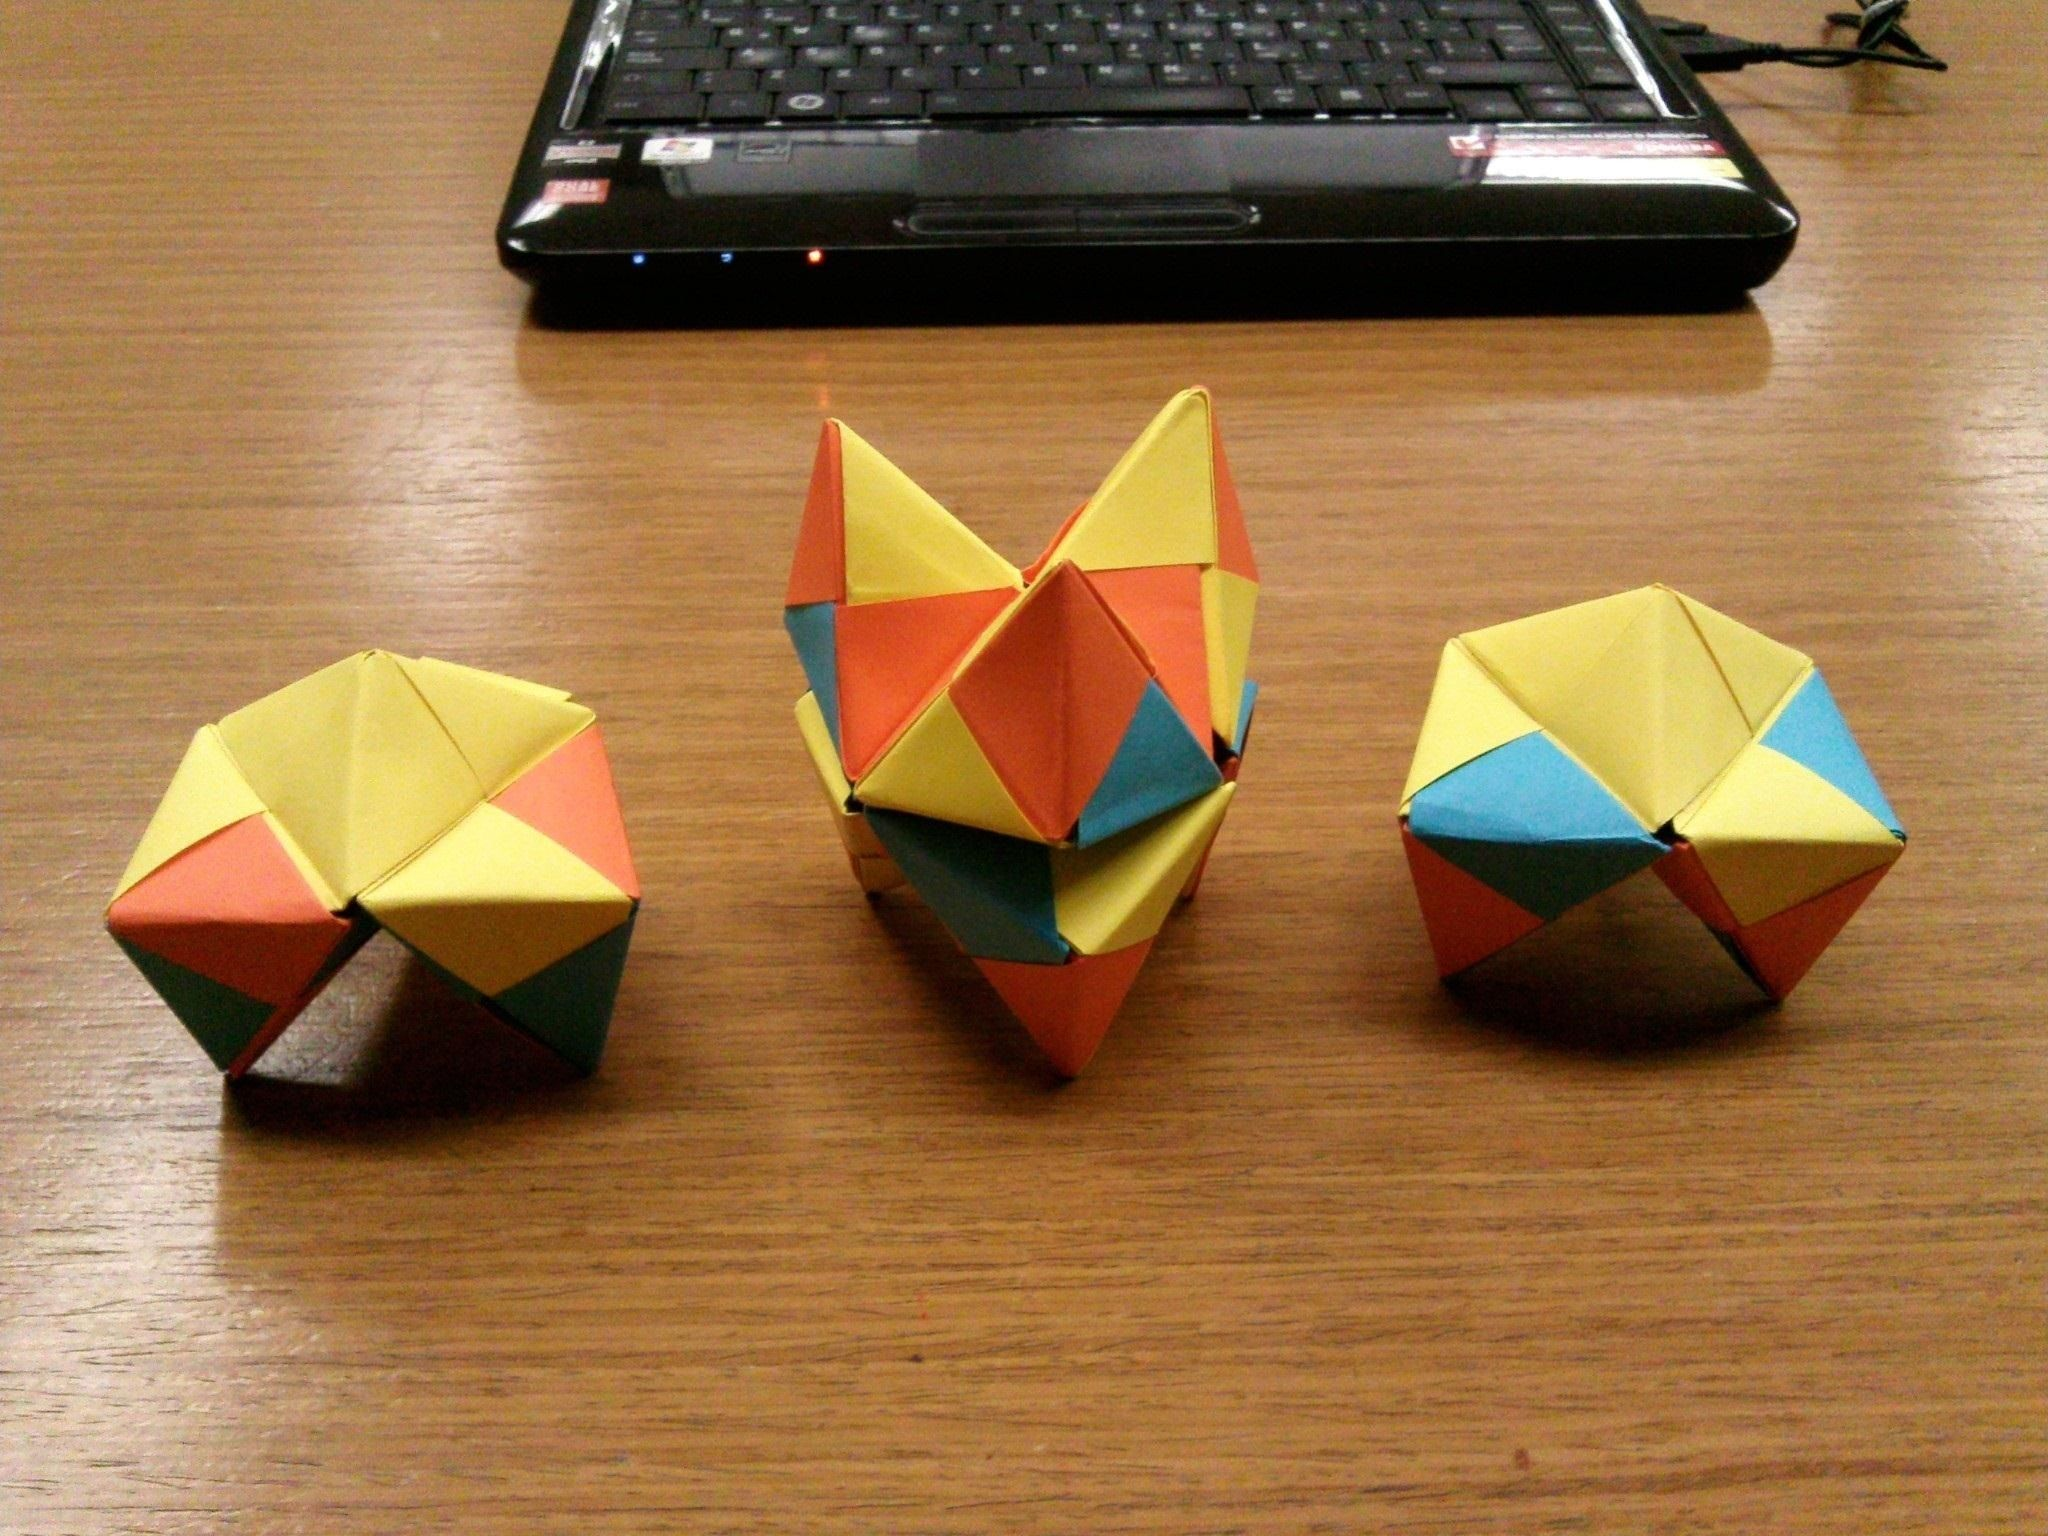 Modular Origami: How to Make a Cube, Octahedron ... - photo#49